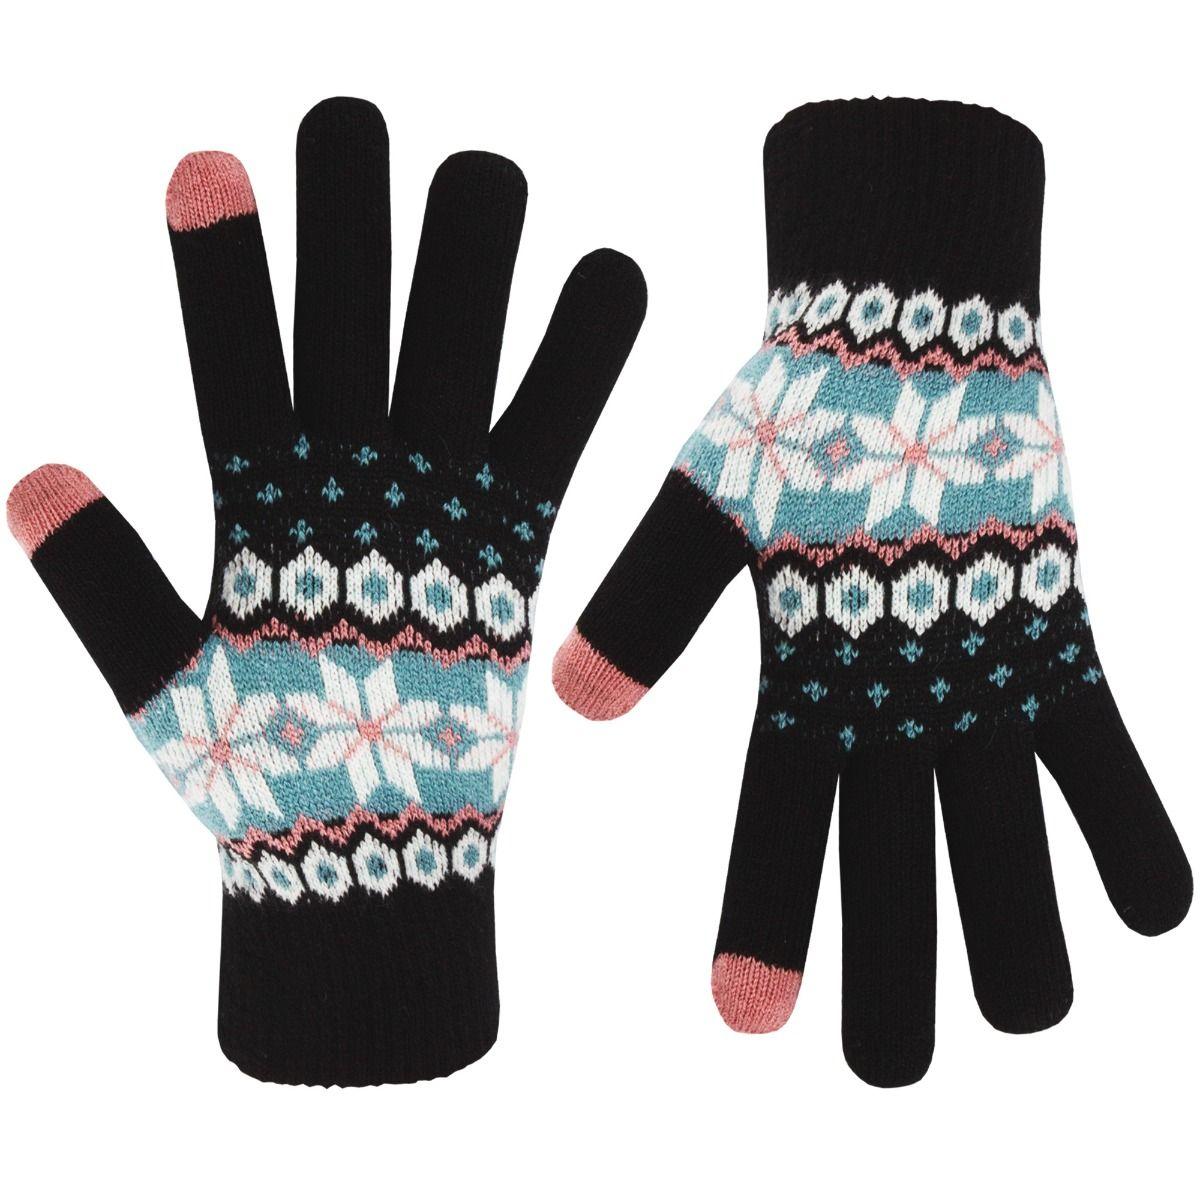 Accessories   Womens Fair Isle  Thermal Winter iTouch Gloves